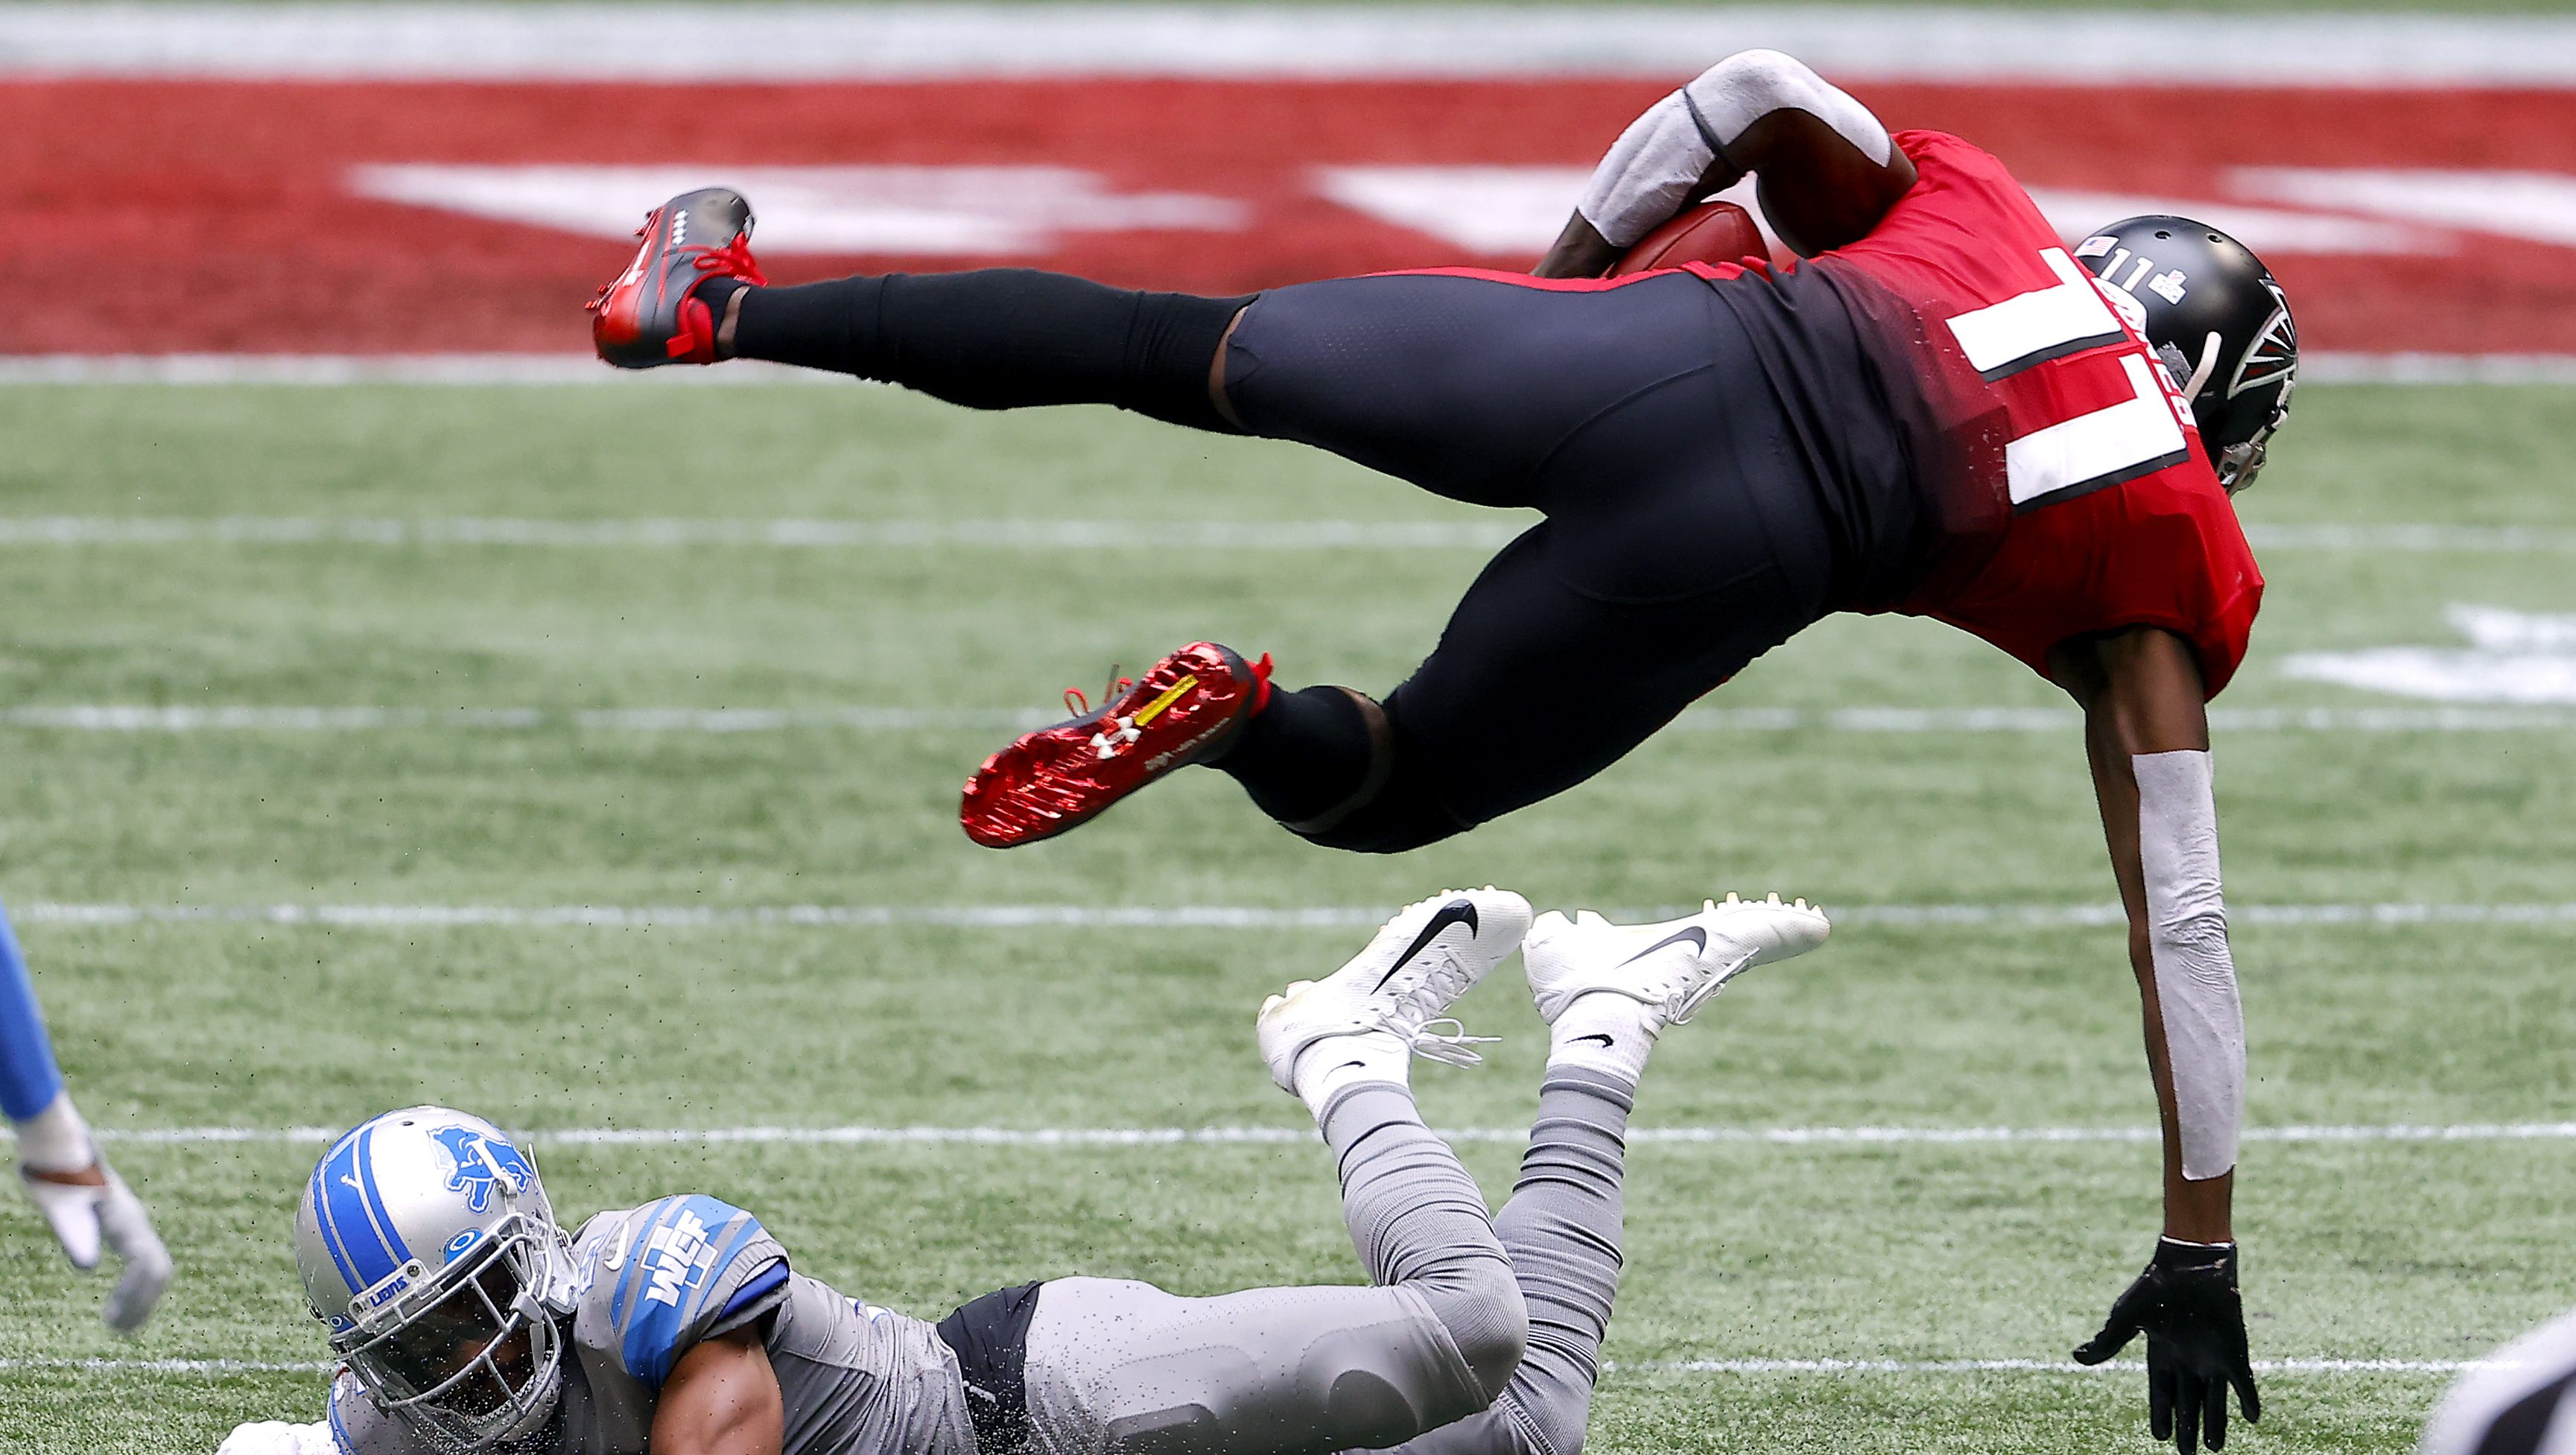 Falcons-Panthers Injury Report: Julio Jones Listed With New Injury